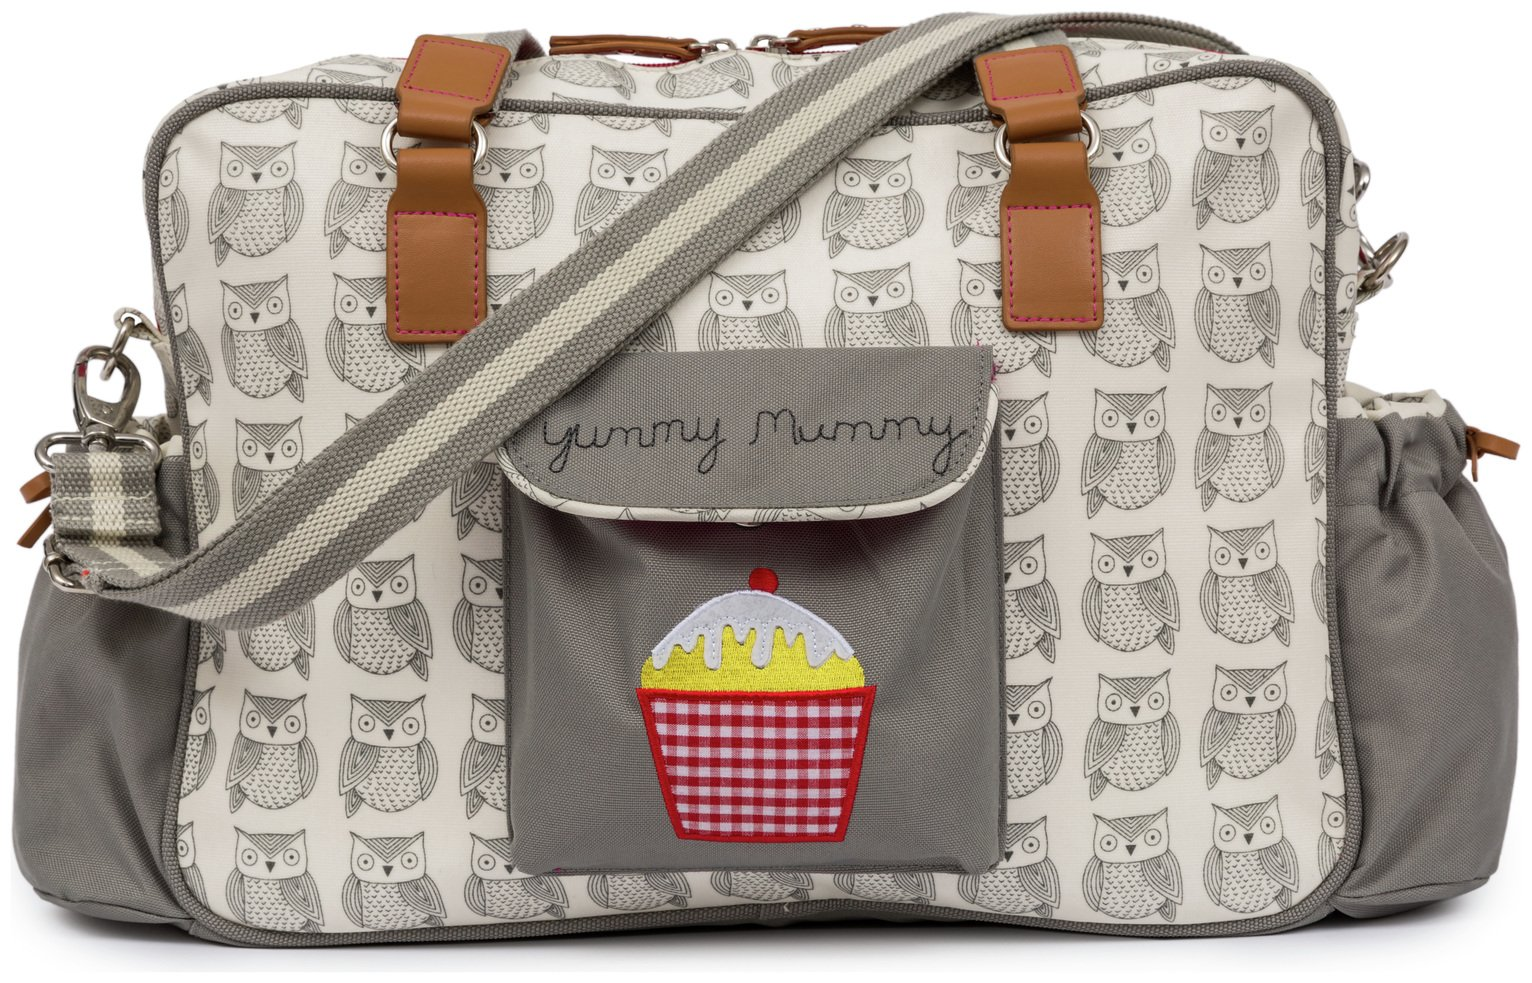 Pink Lining Yummy Mummy Bag - Wise Owl